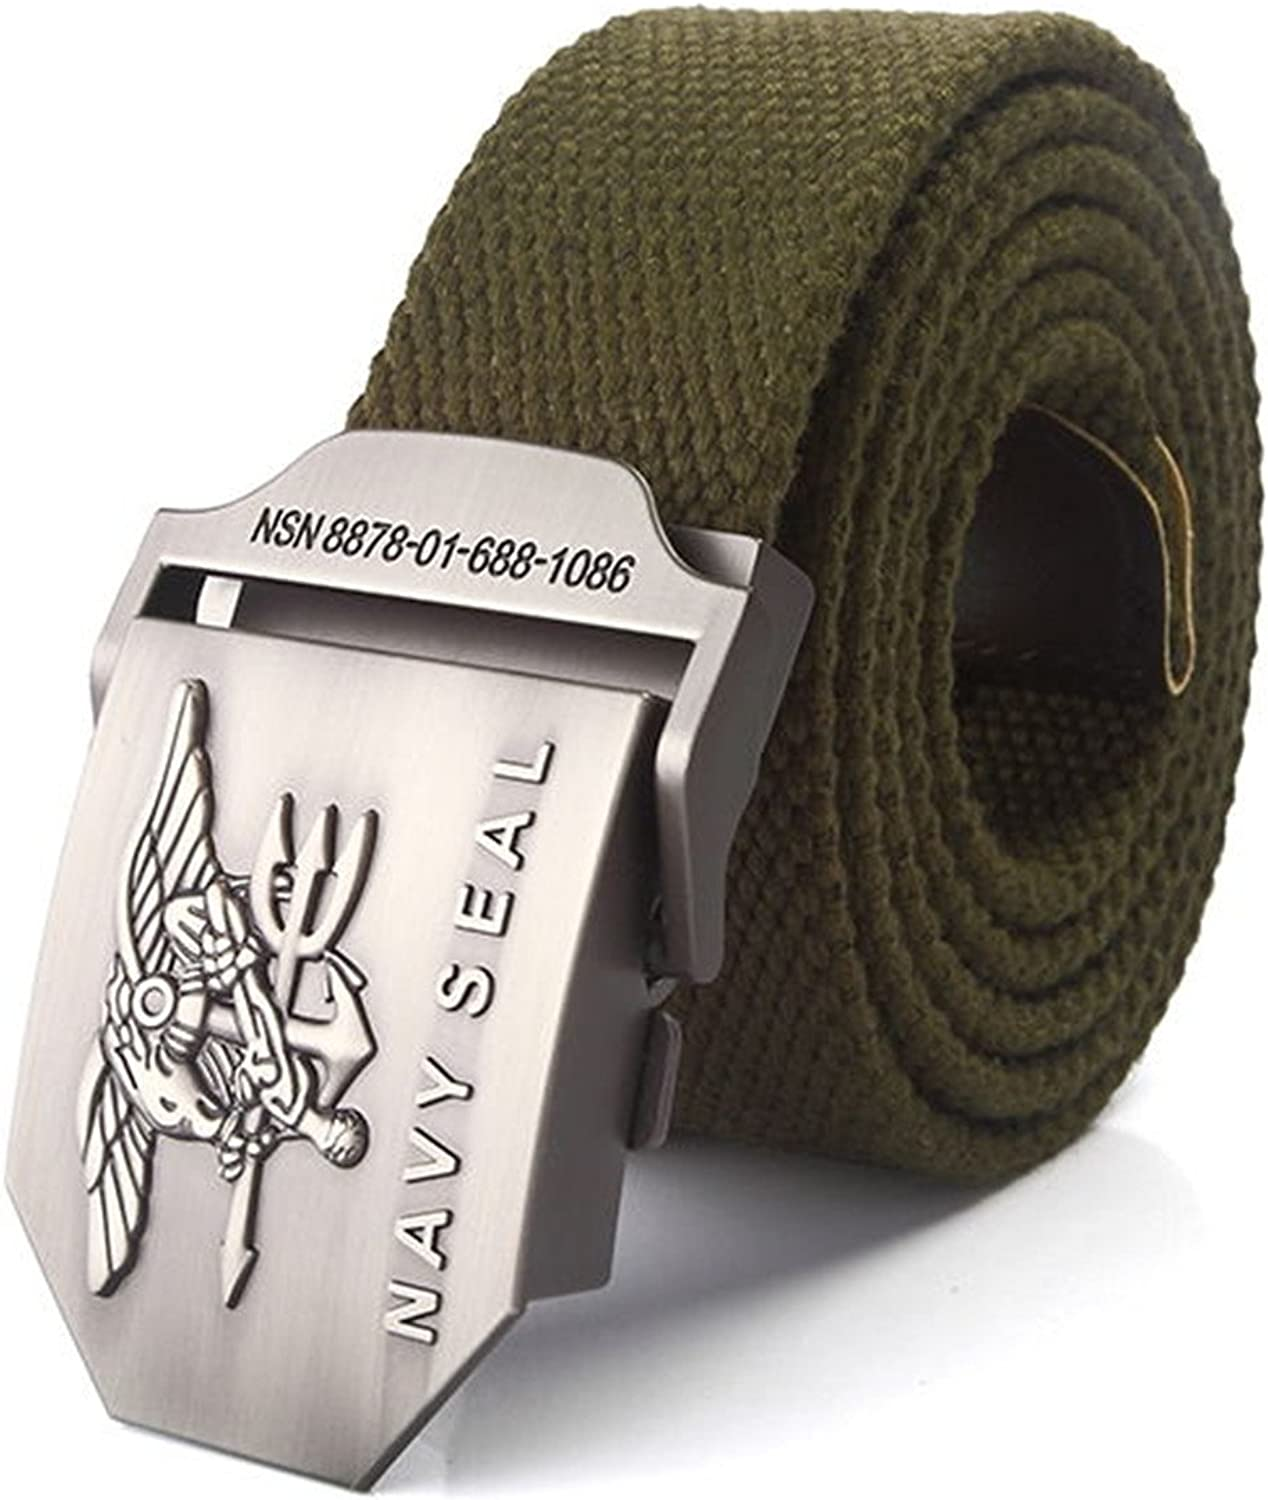 Meetloveyou mens NAVY SEAL metal buckle military belt Army tactical belts for Male top quality men strap Black strips